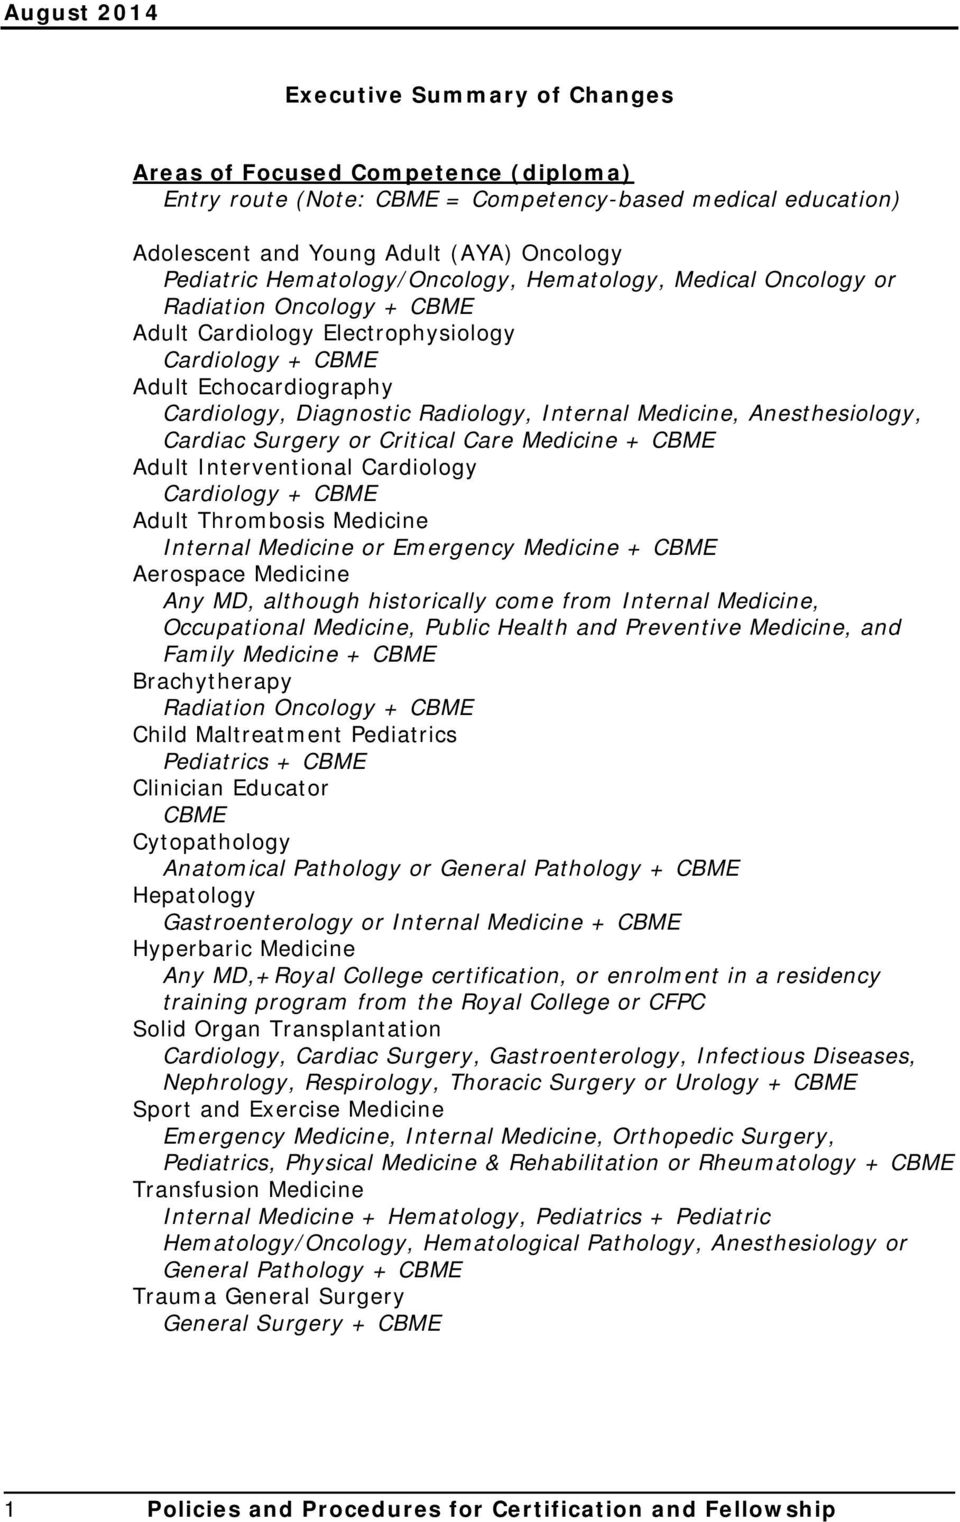 Medicine, Anesthesiology, Cardiac Surgery or Critical Care Medicine + CBME Adult Interventional Cardiology Cardiology + CBME Adult Thrombosis Medicine Internal Medicine or Emergency Medicine + CBME